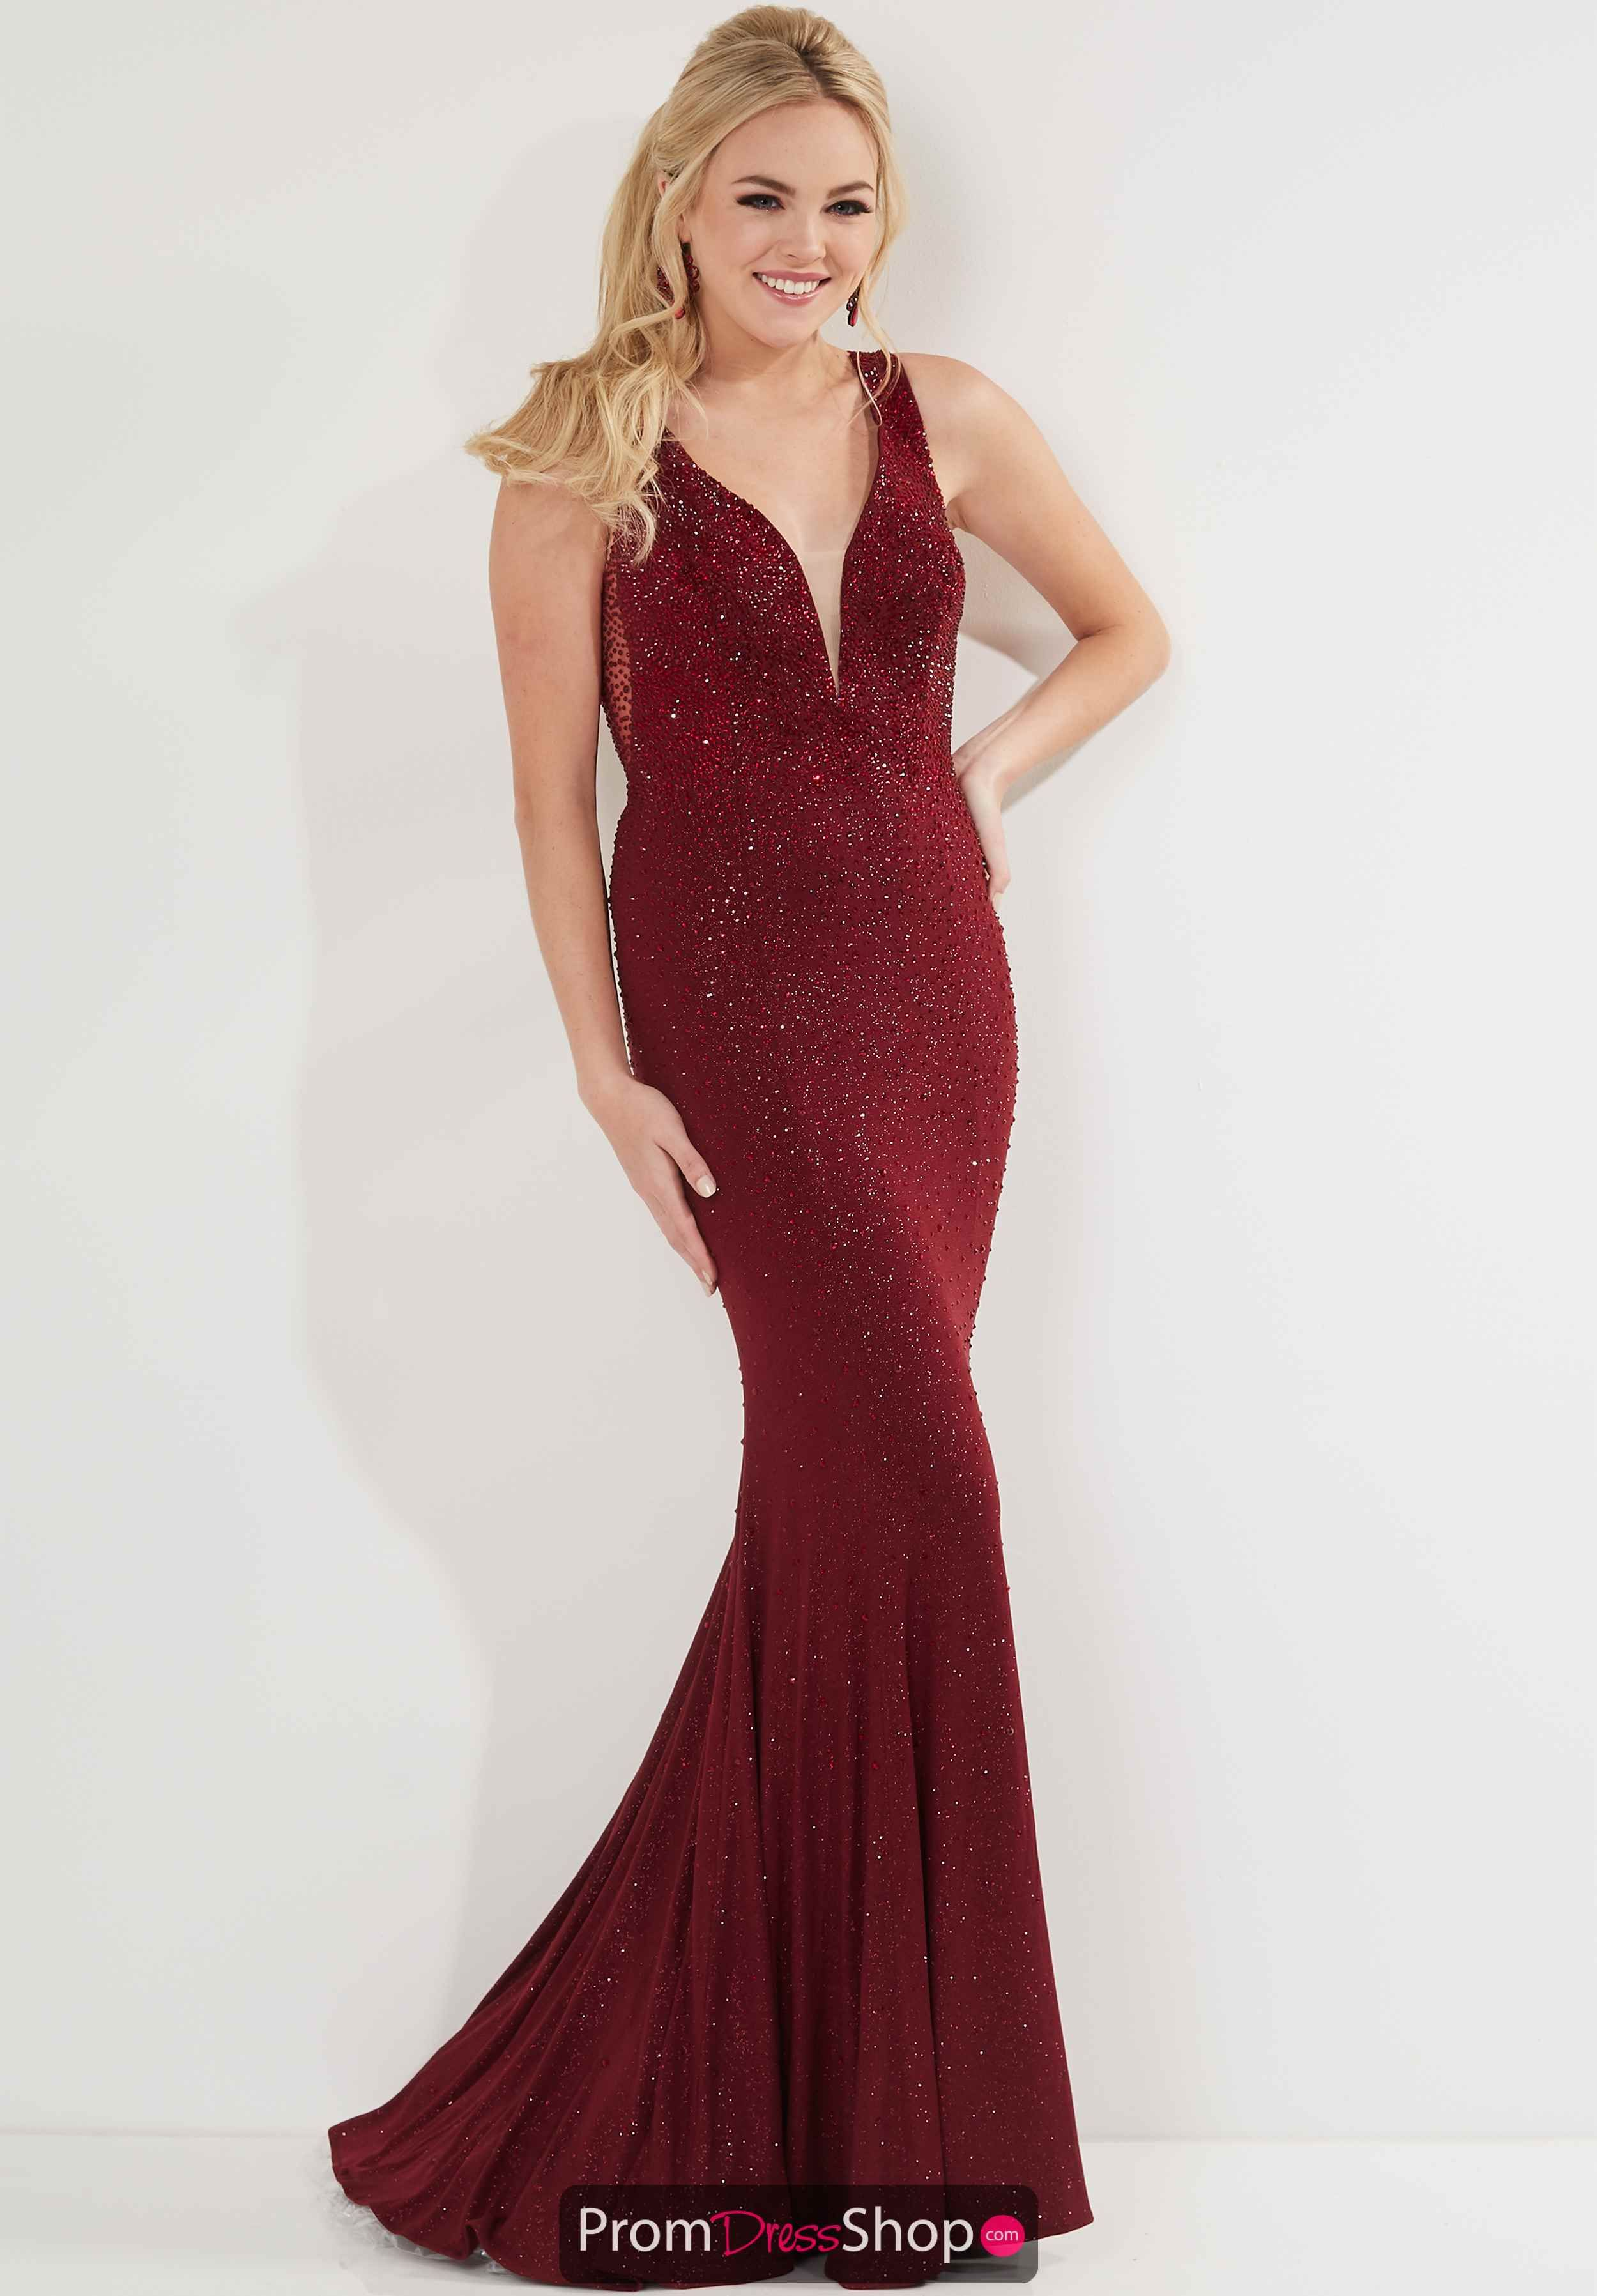 Studio 17 Prom Dresses Dresses Burgundy Prom Dress Super Cute Dresses